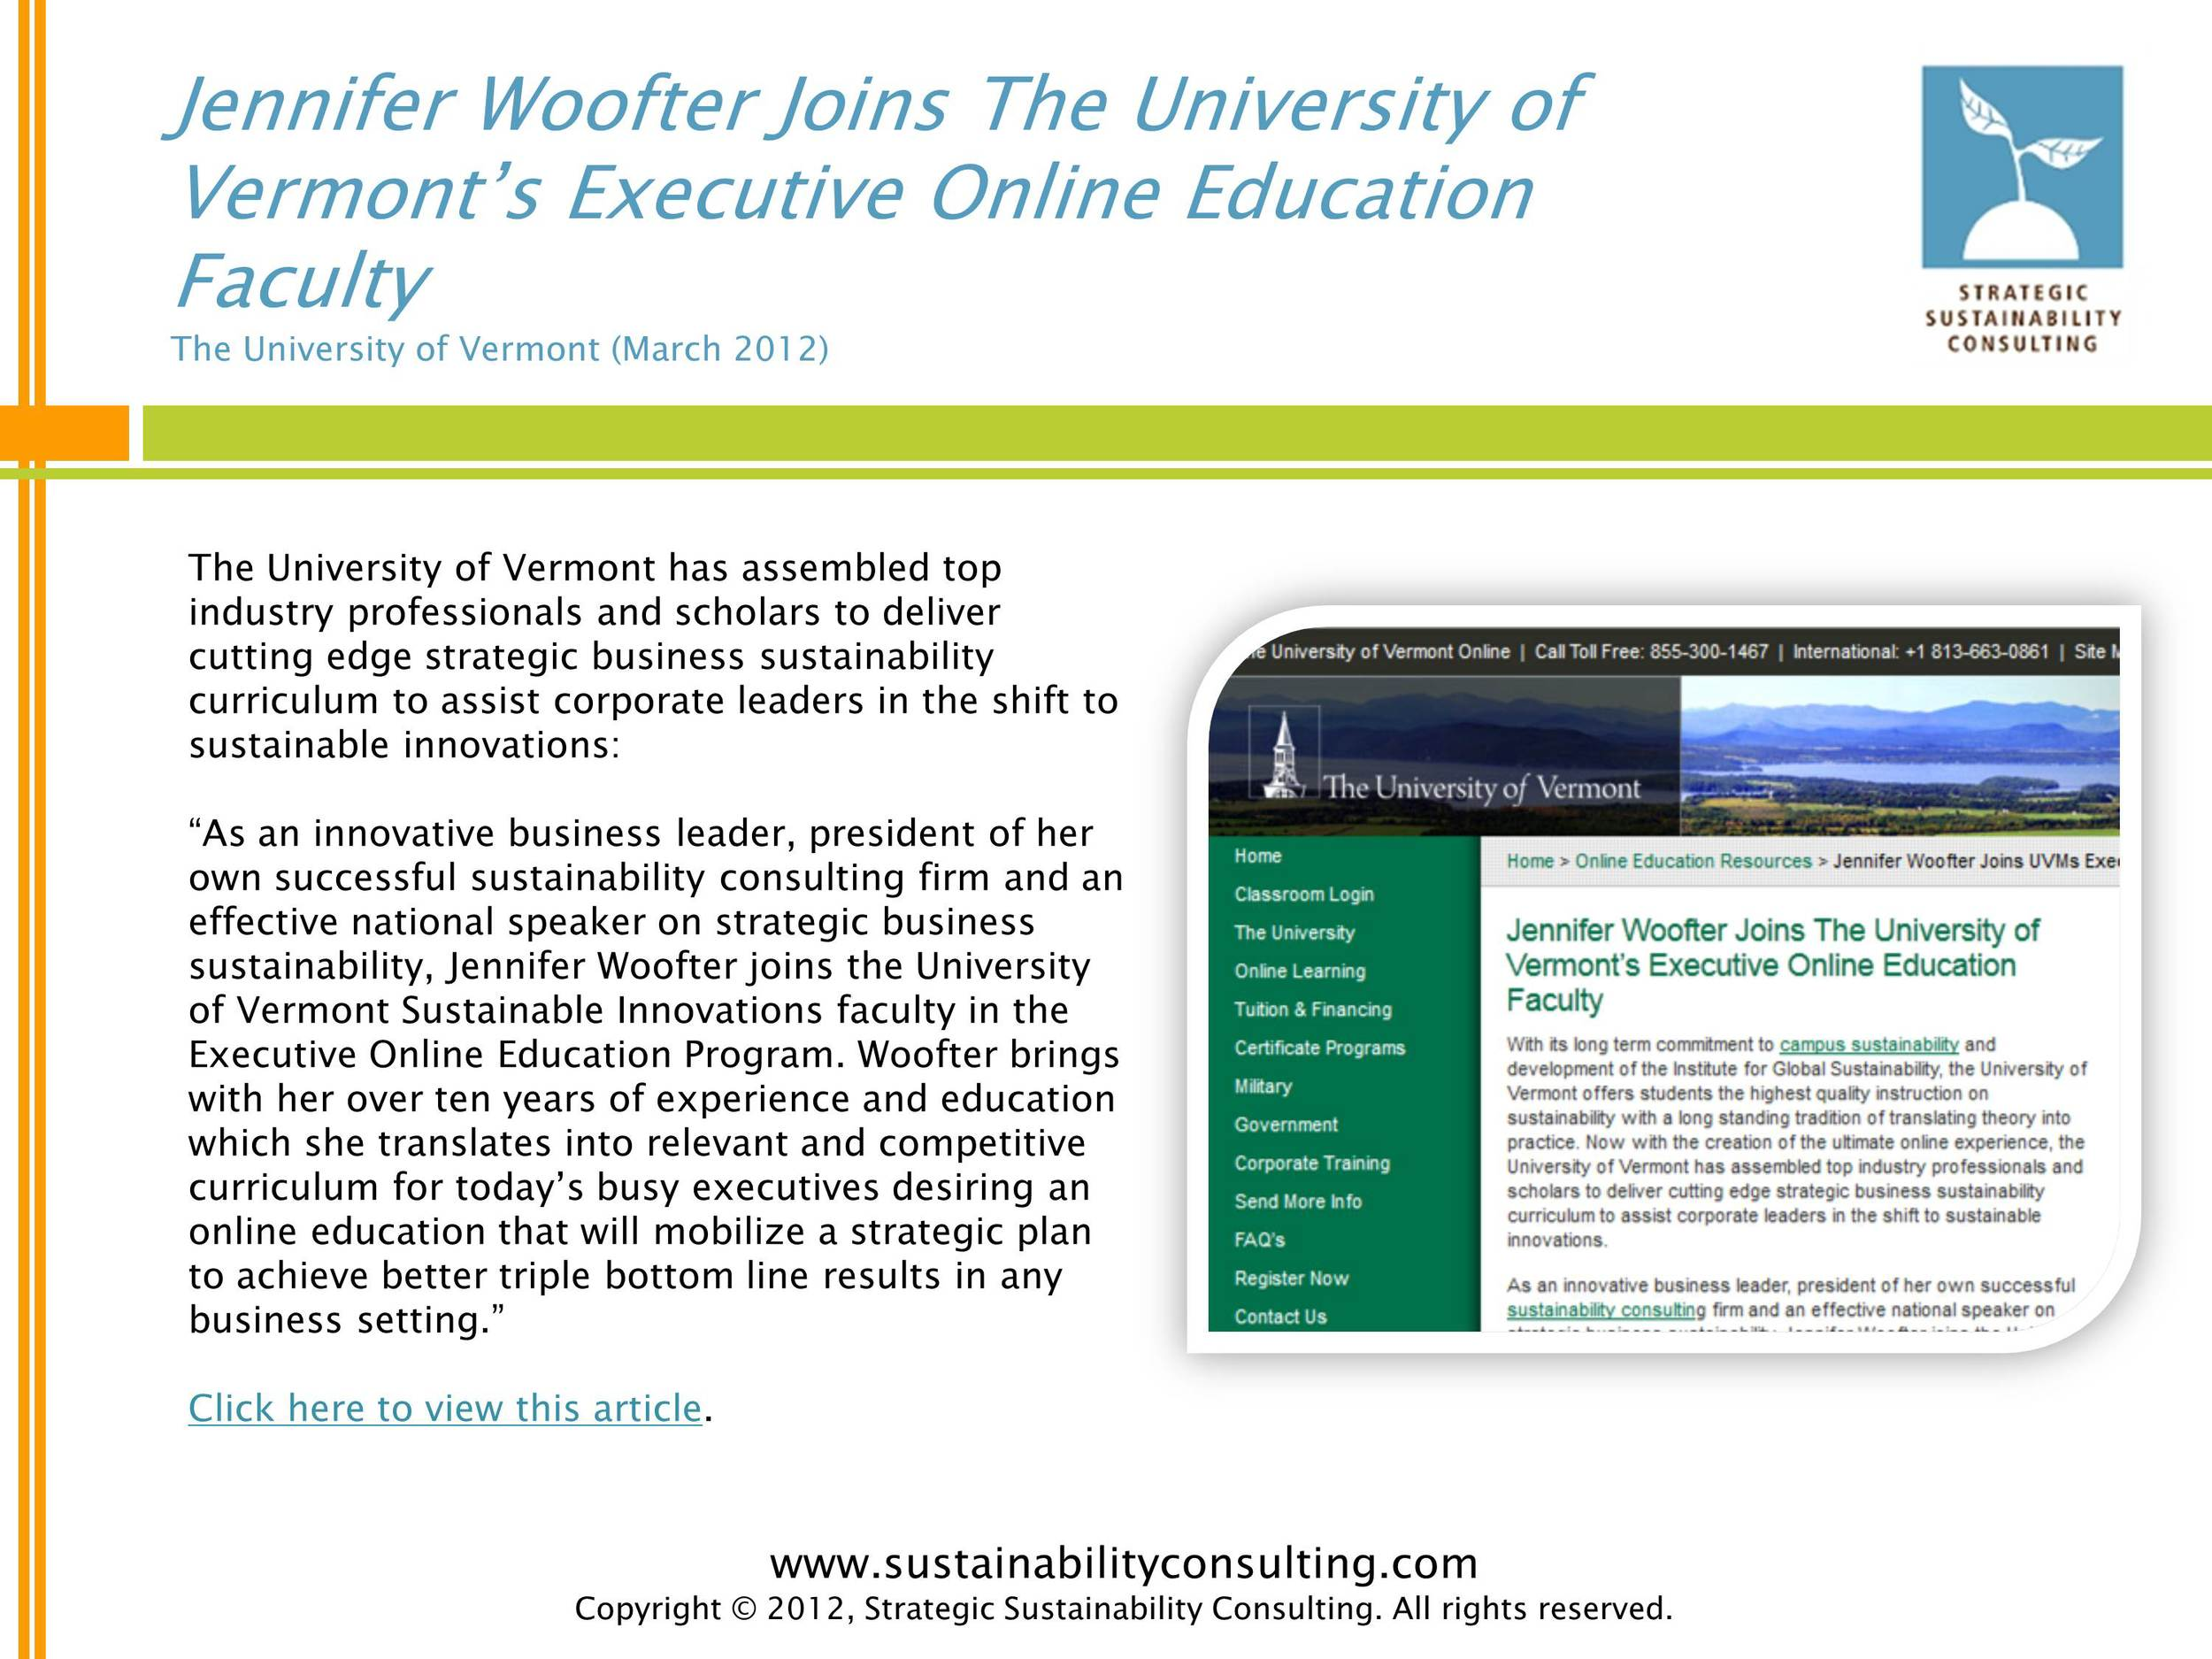 Jennifer Woofter Joins The University of Vermont's Executive Online Education Faculty